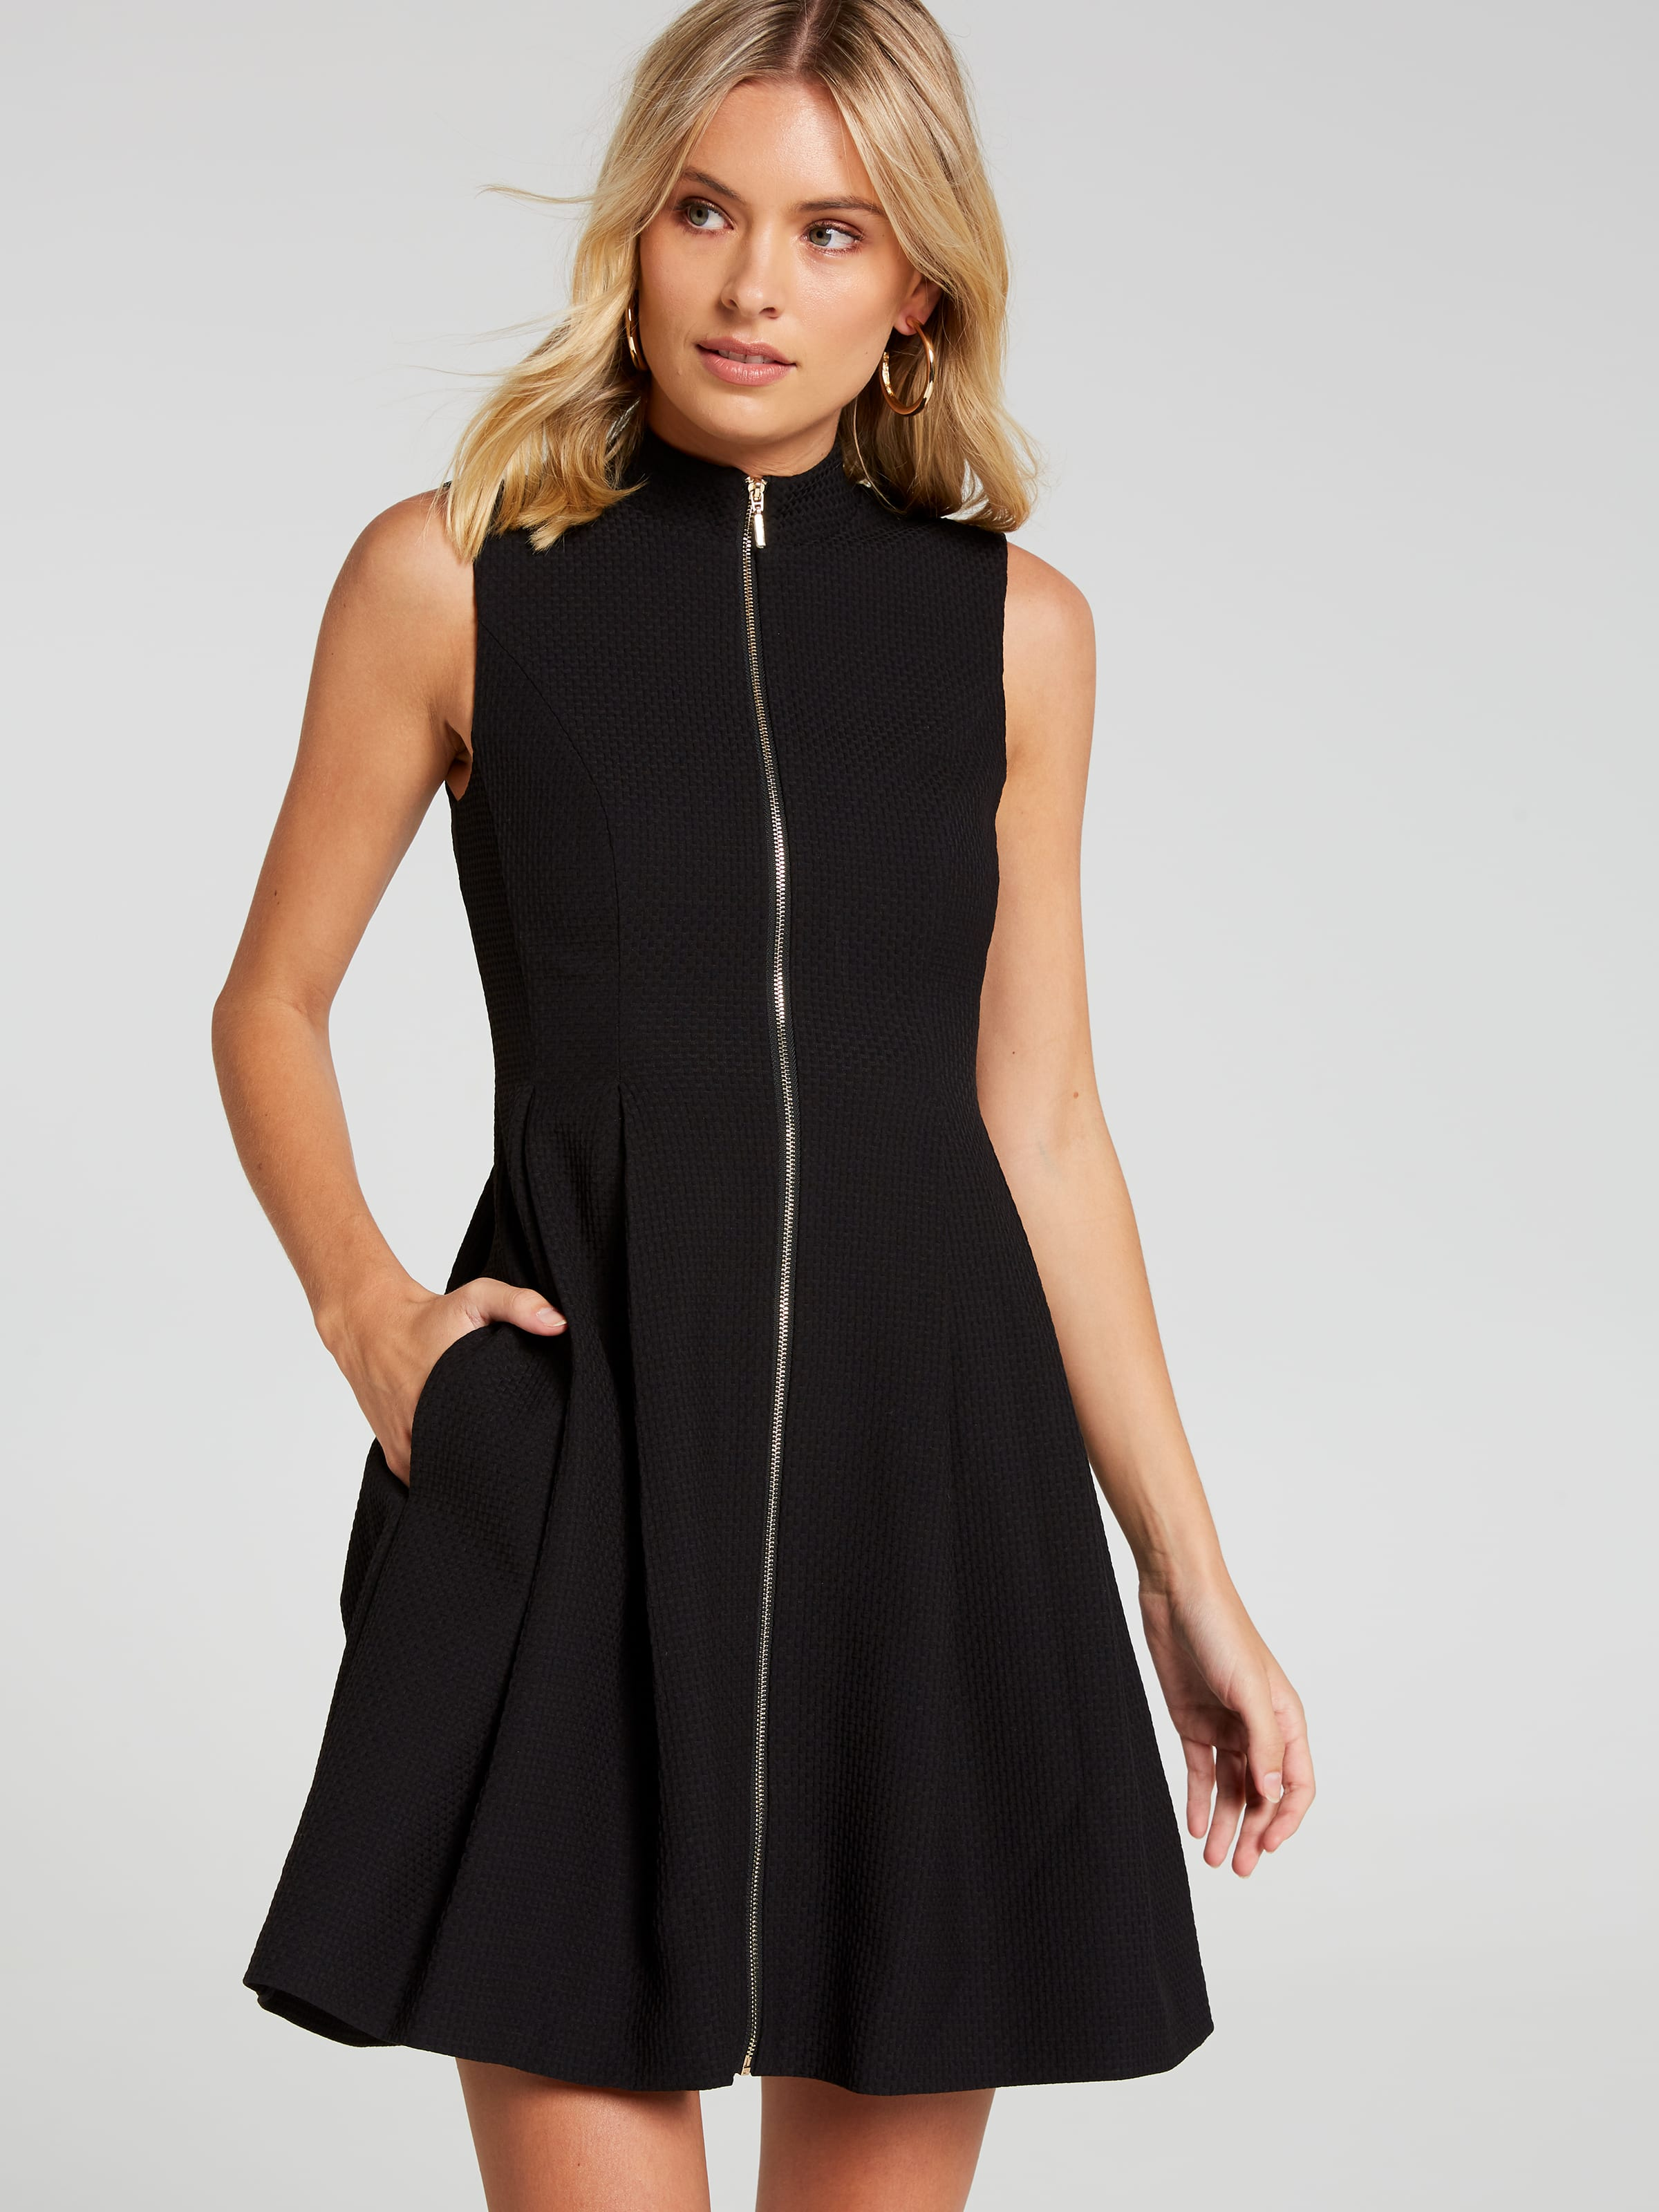 Adelaide High Neck Fit & Flare Dress